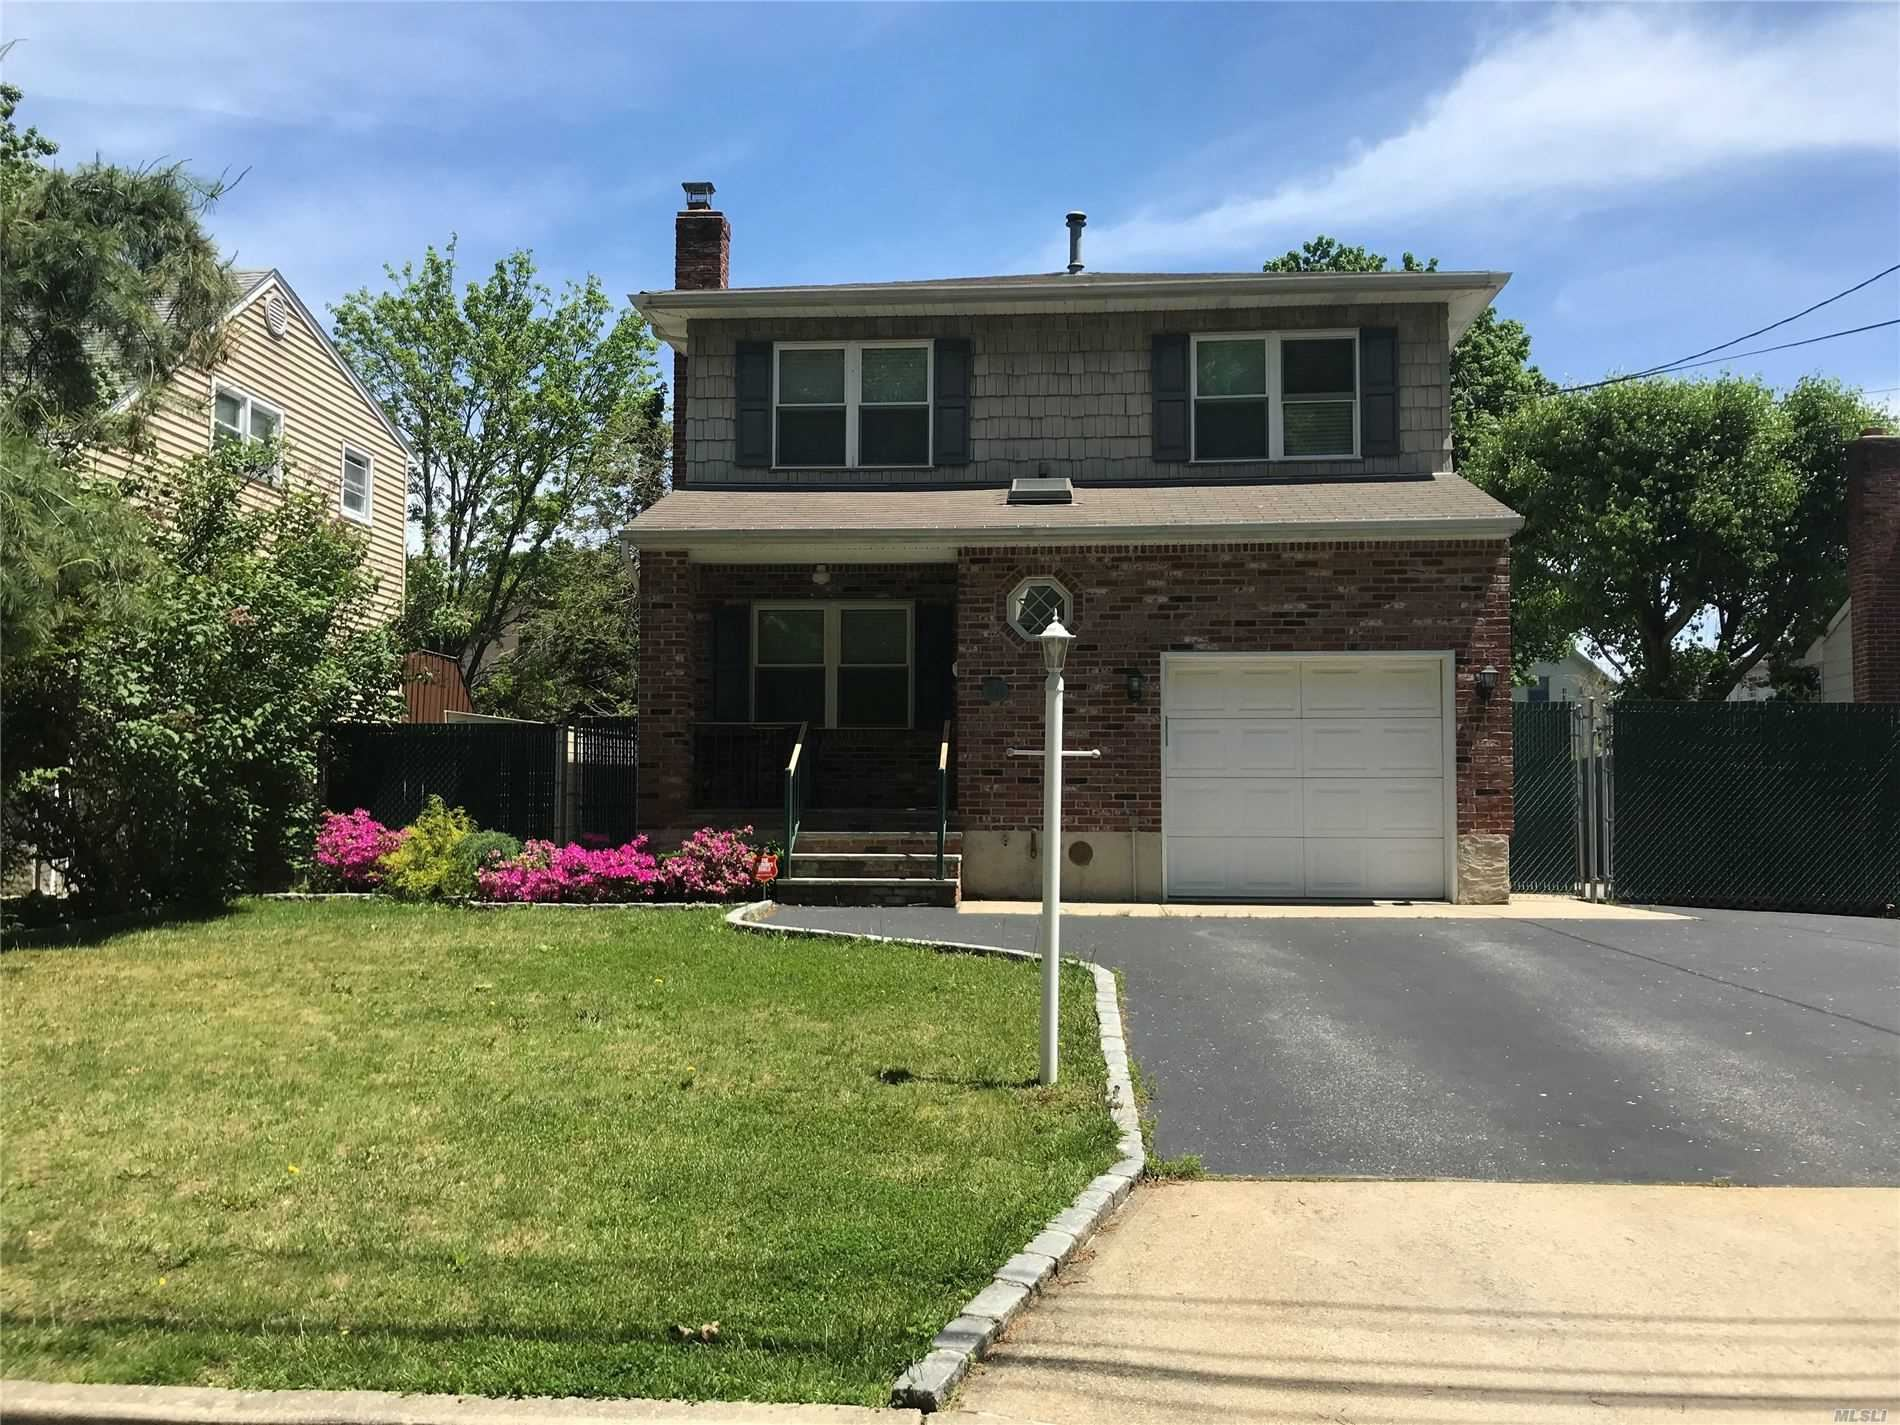 20 Calhoun Street, North Babylon, NY 11703 - MLS#: 3212409